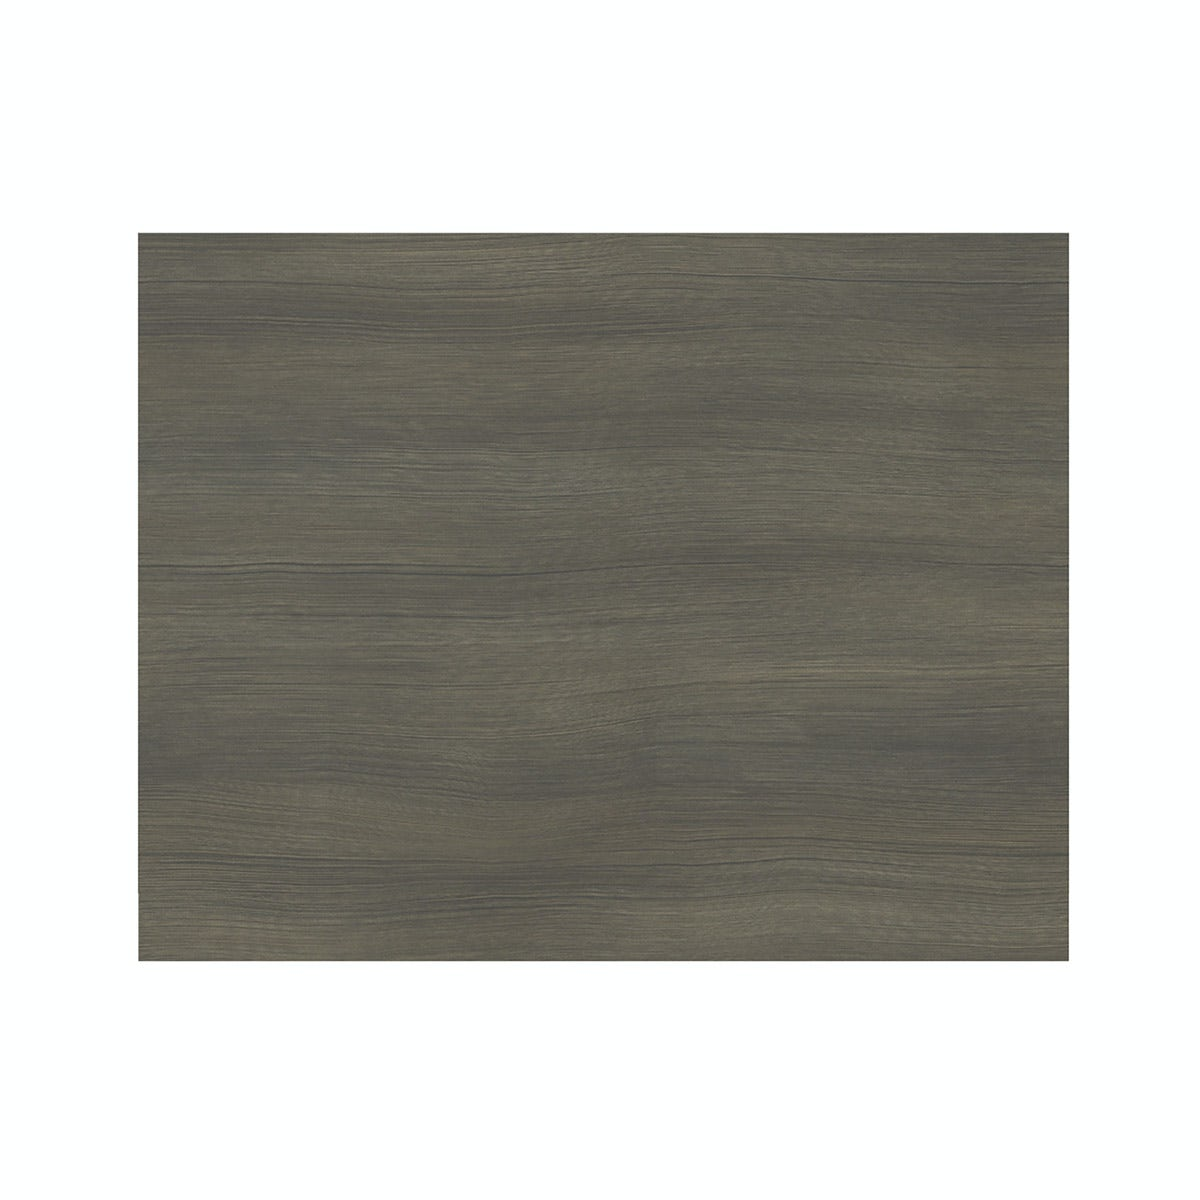 Orchard Wye walnut shower bath end panel 680mm